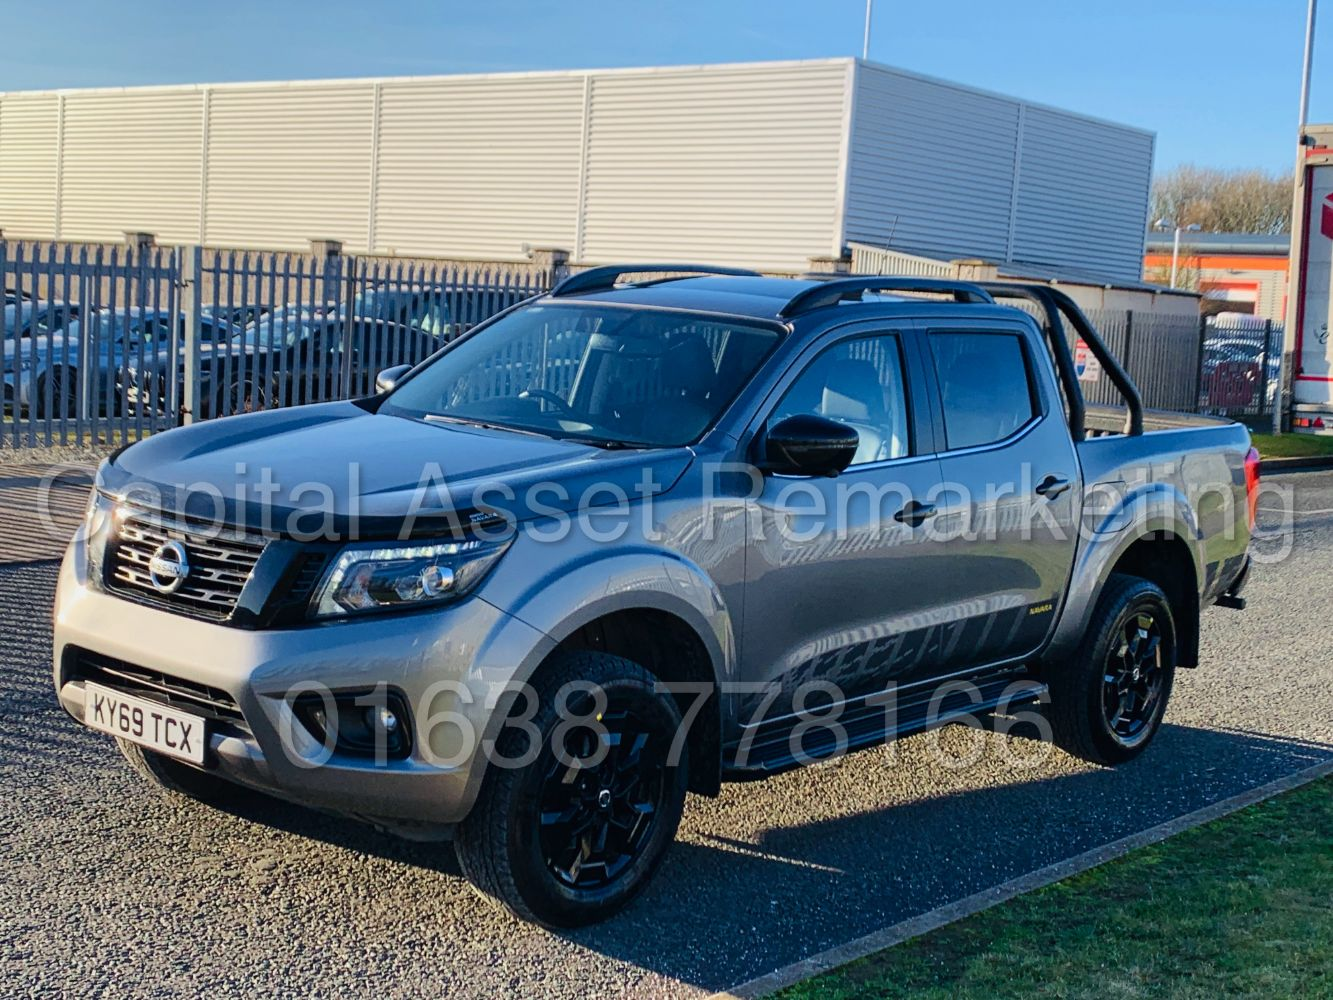 '2020 Model' Nissan Navara *N-GUARD Edition* D/Cab Pick-Up (Top Of The Range) + Many More: Cars, Commercials & 4x4's !!!